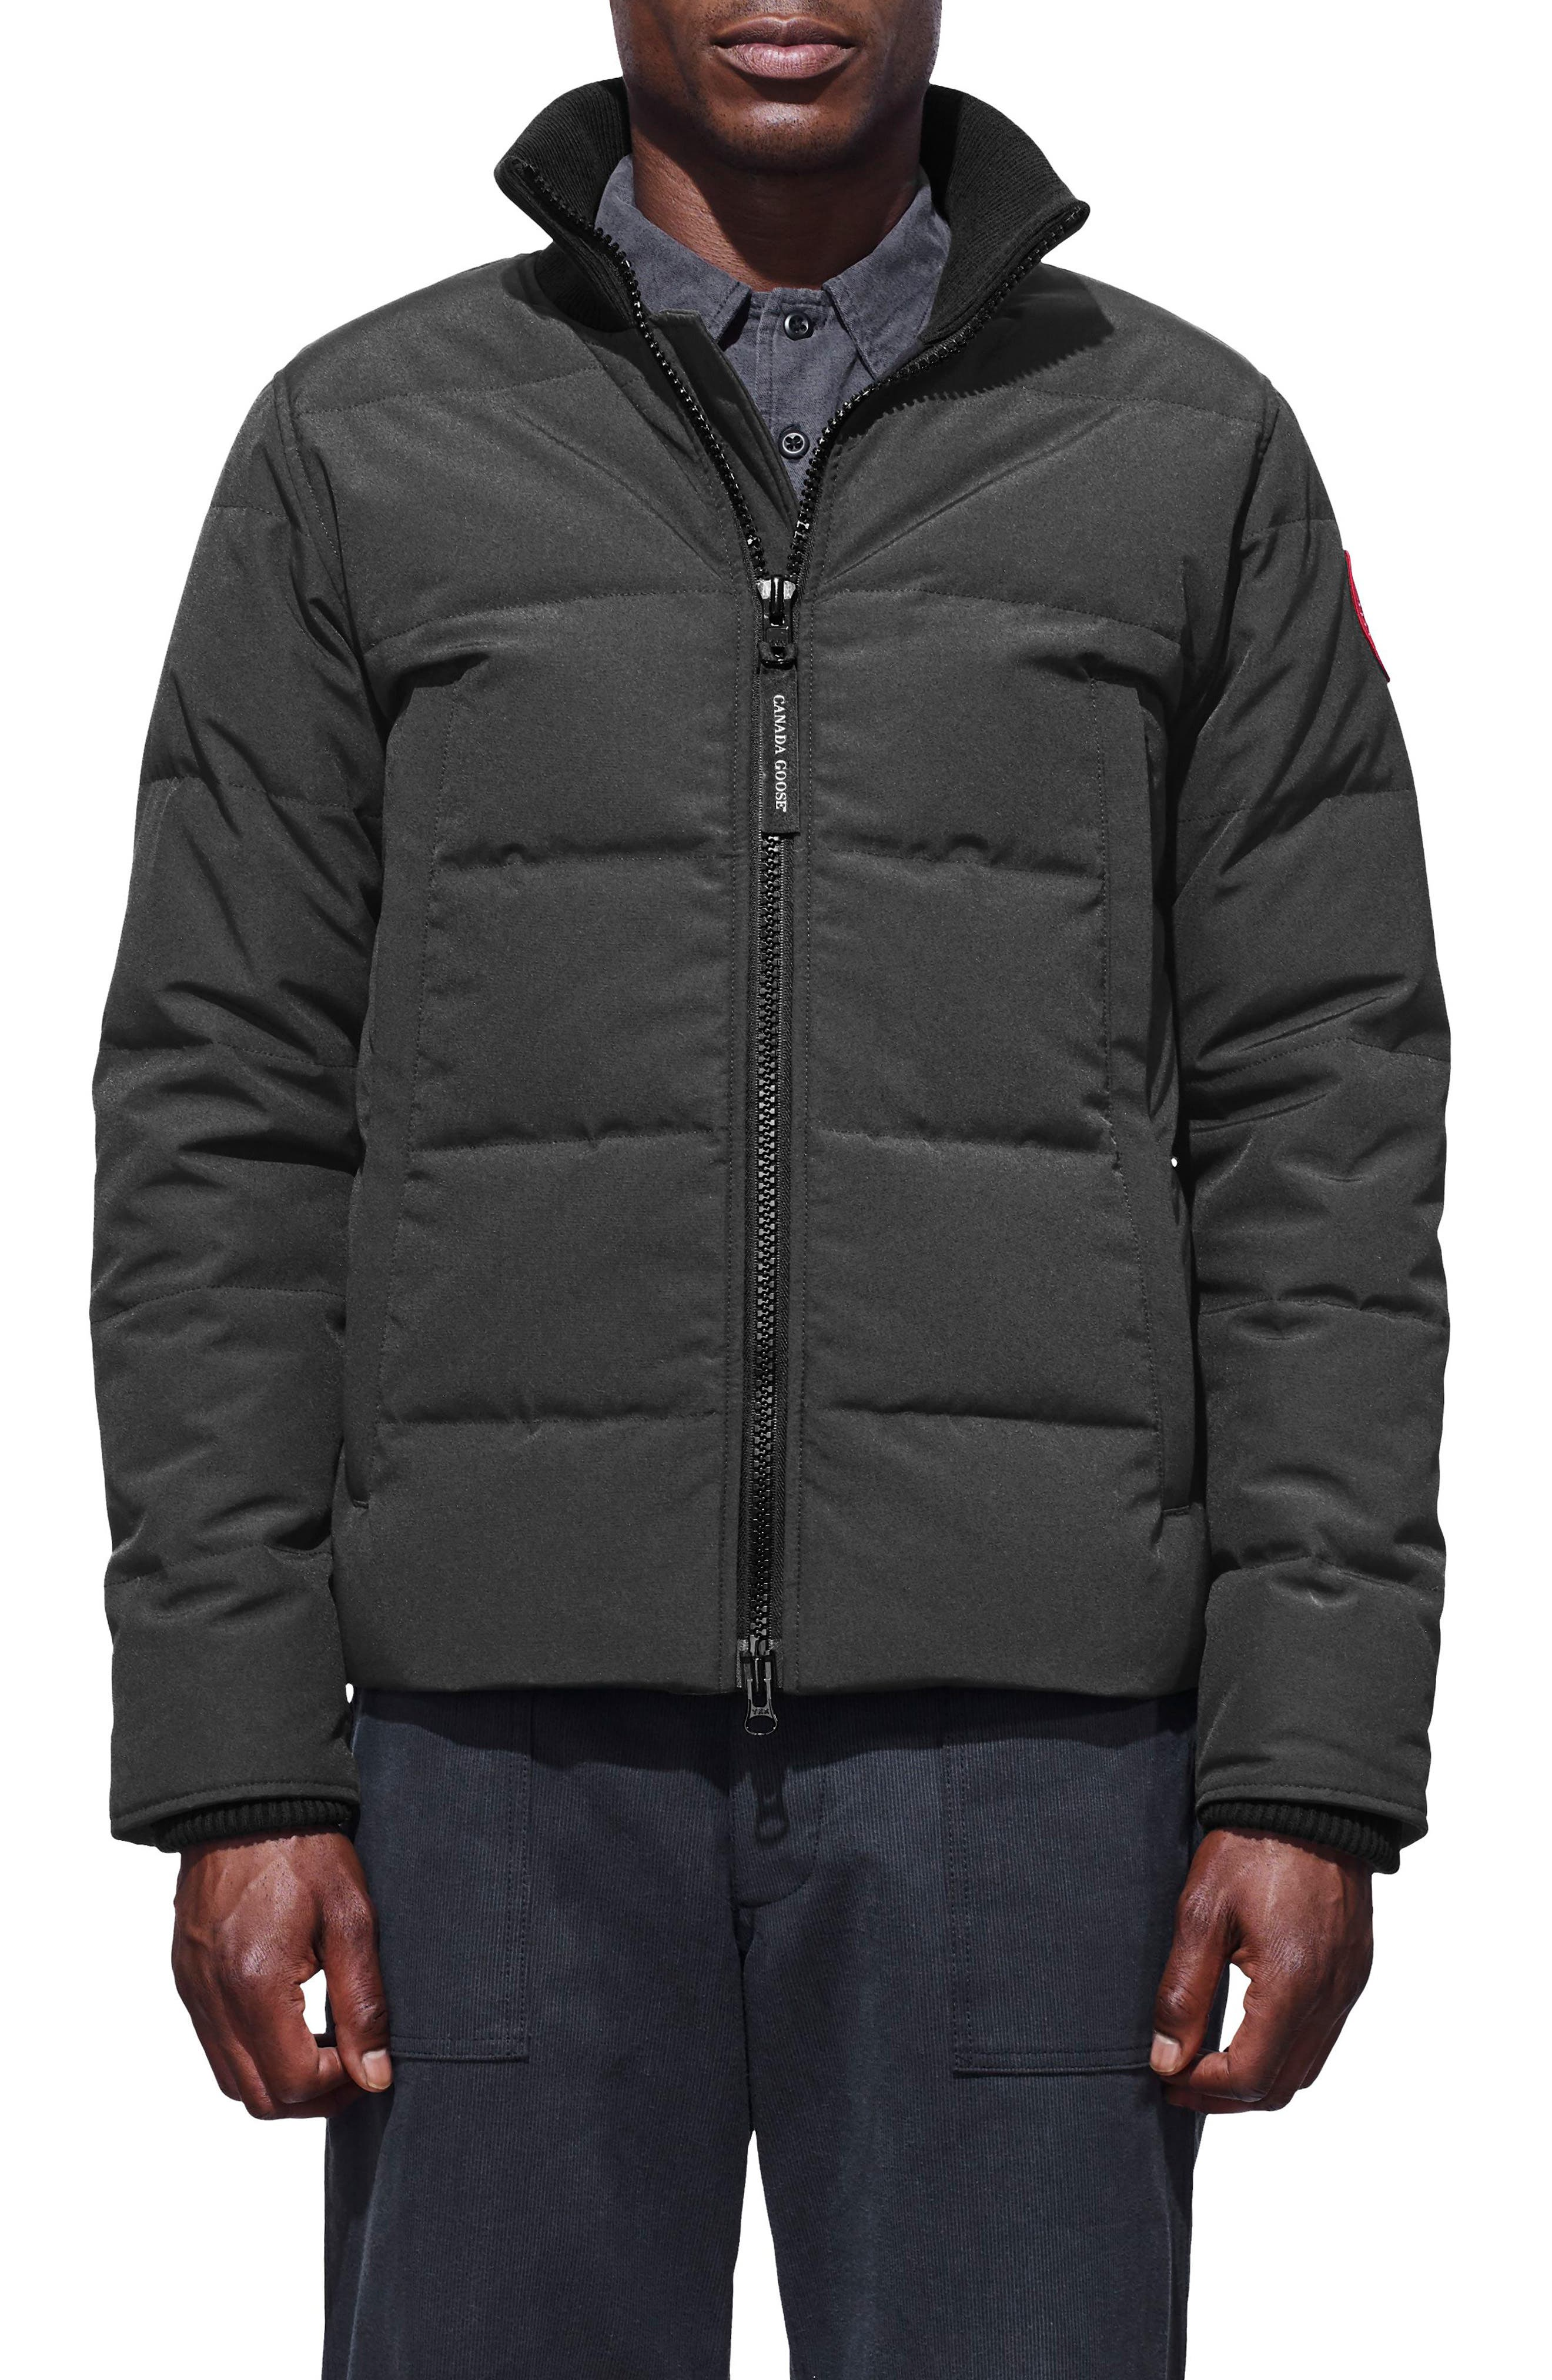 CANADA GOOSE, 'Woolford' Slim Fit Down Bomber Jacket, Main thumbnail 1, color, GRAPHITE